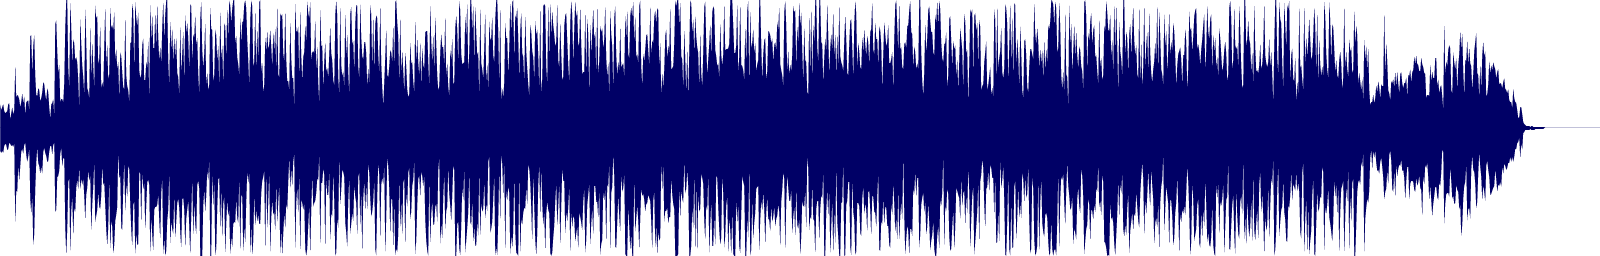 waveform of track #152173